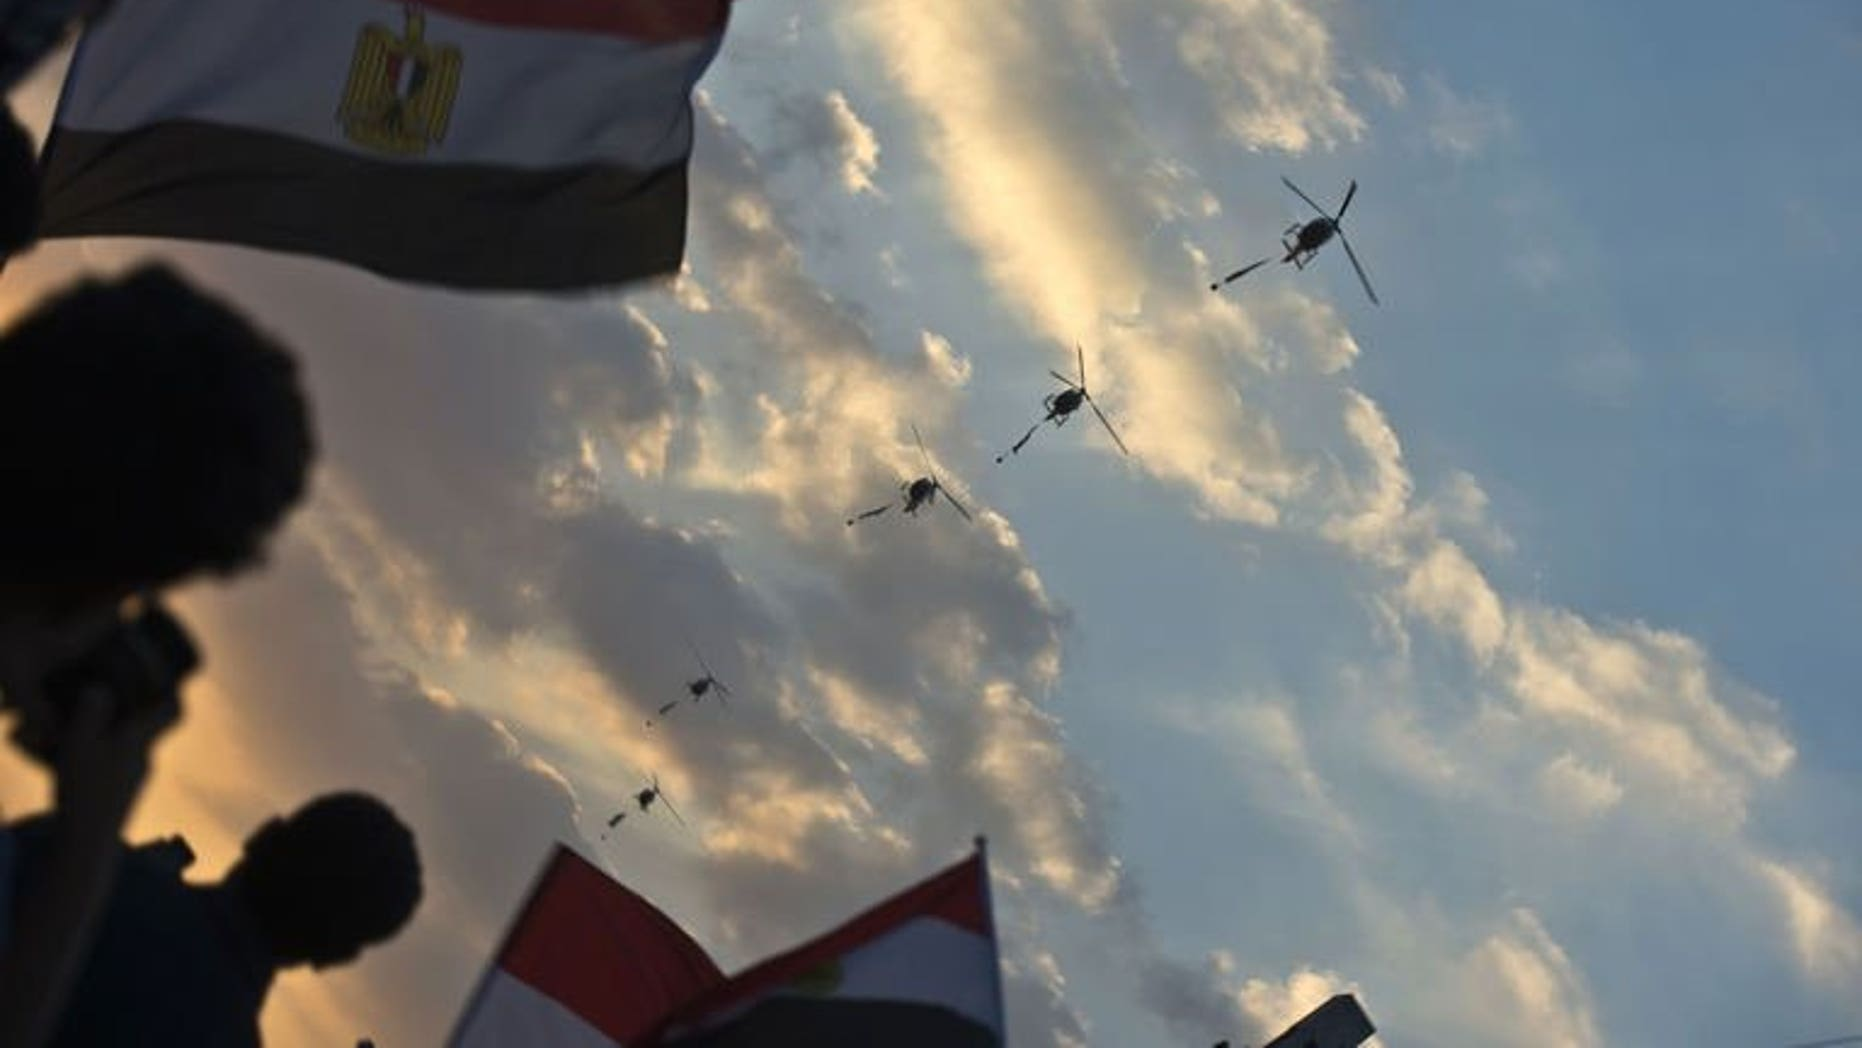 Egyptian army helicopters fly over as hundreds of thousands of Egyptian demonstrators gather outside the presidential palace in Cairo during a protest calling for the ouster of President Mohamed Morsi on July 1, 2013.